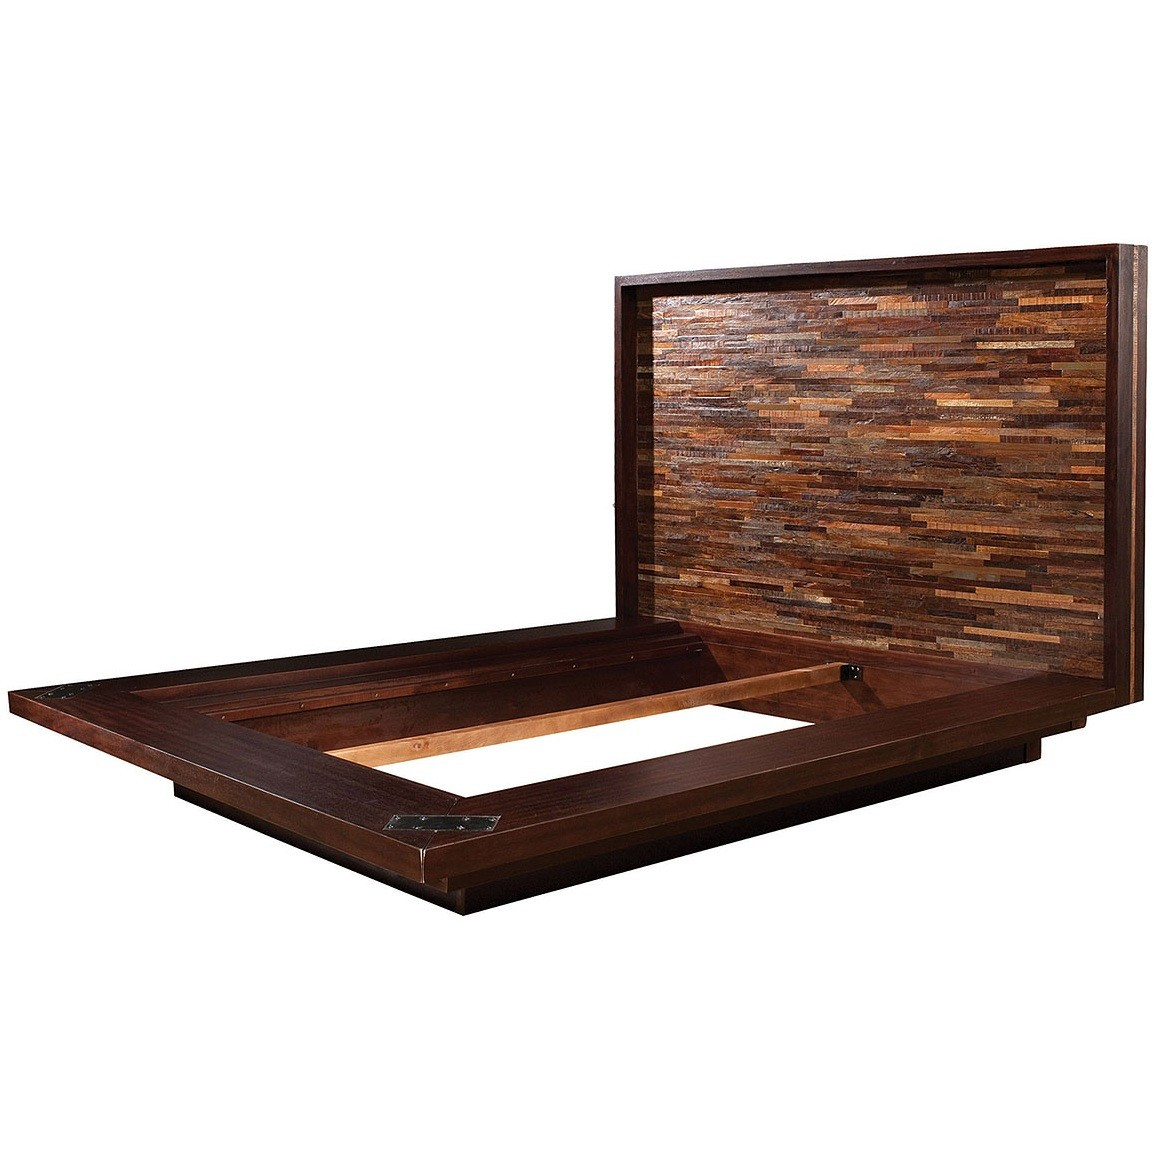 Devon reclaimed wood queen platform bed frame zin home Wood platform bed